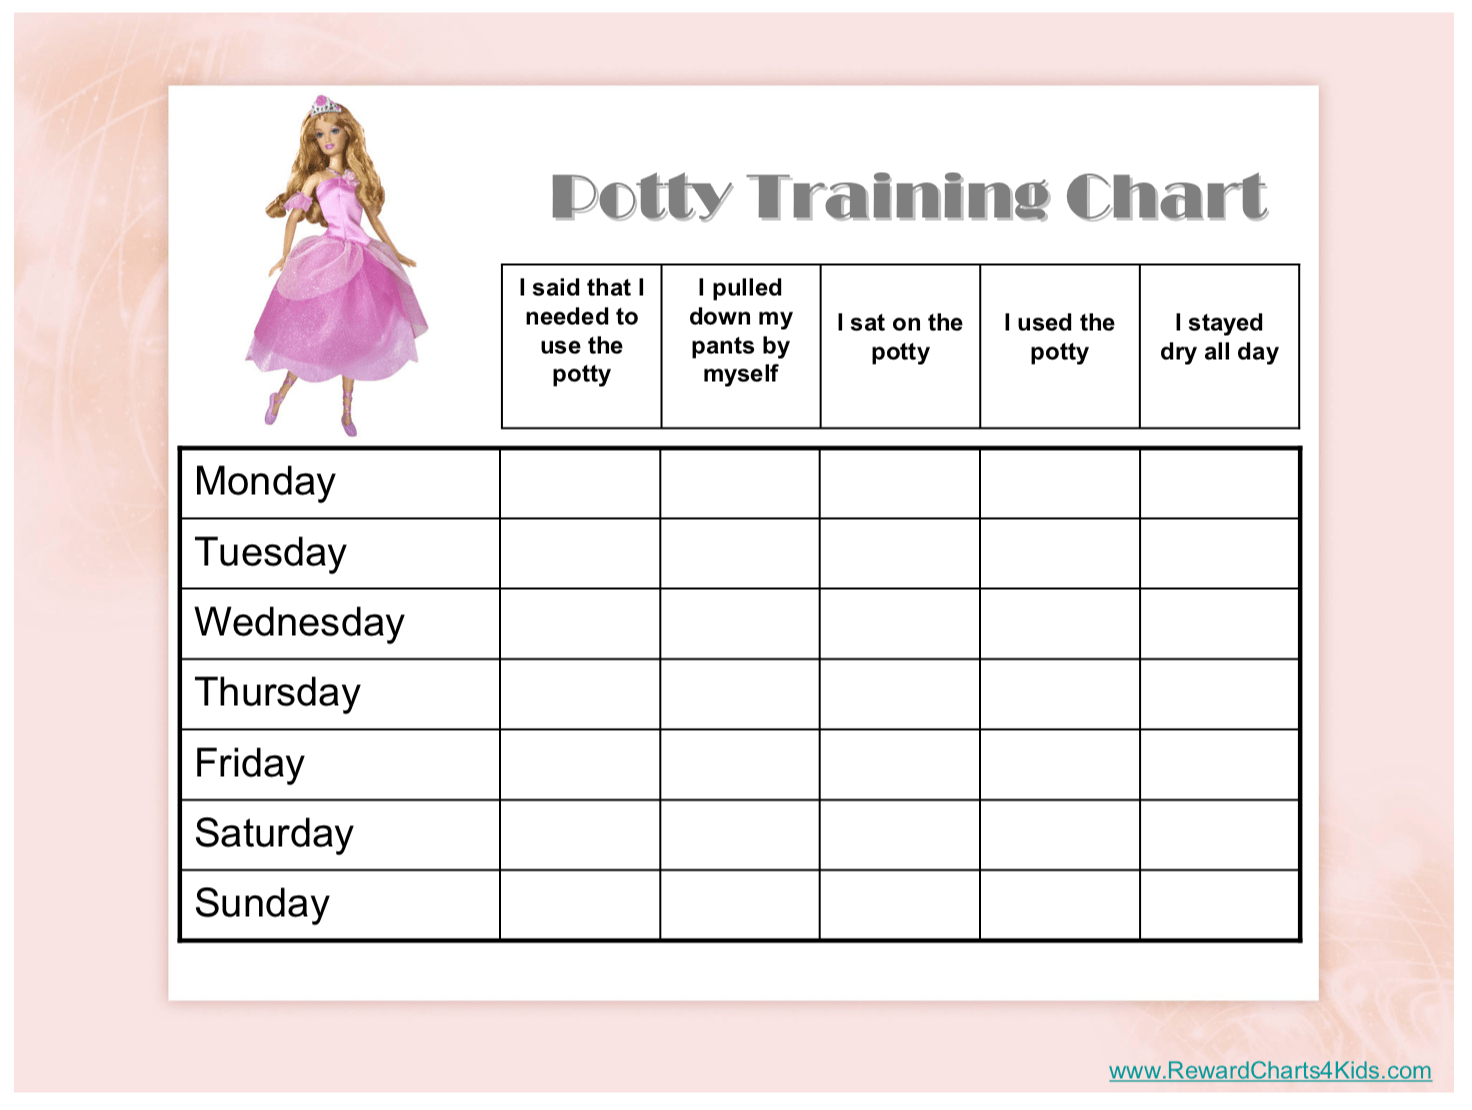 Free Printable Potty Training Charts - Potty Training - Free Printable Potty Training Charts